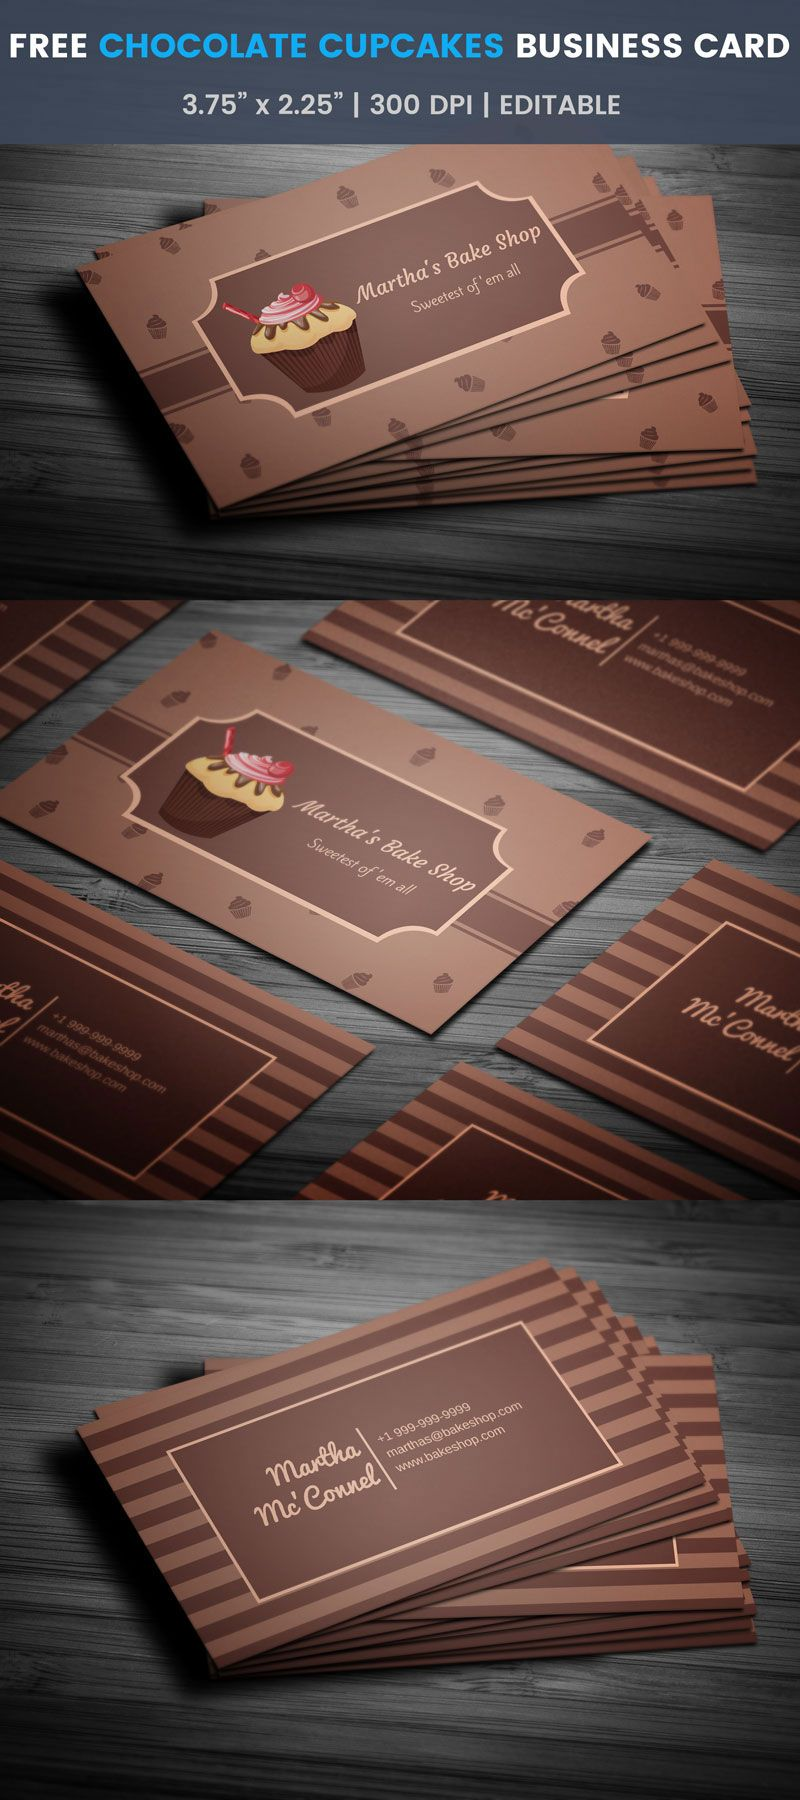 Chocolate Cupcakes Bakery Business Card Full Preview Free Business Card Templates Cupcake Business Cards Free Business Cards